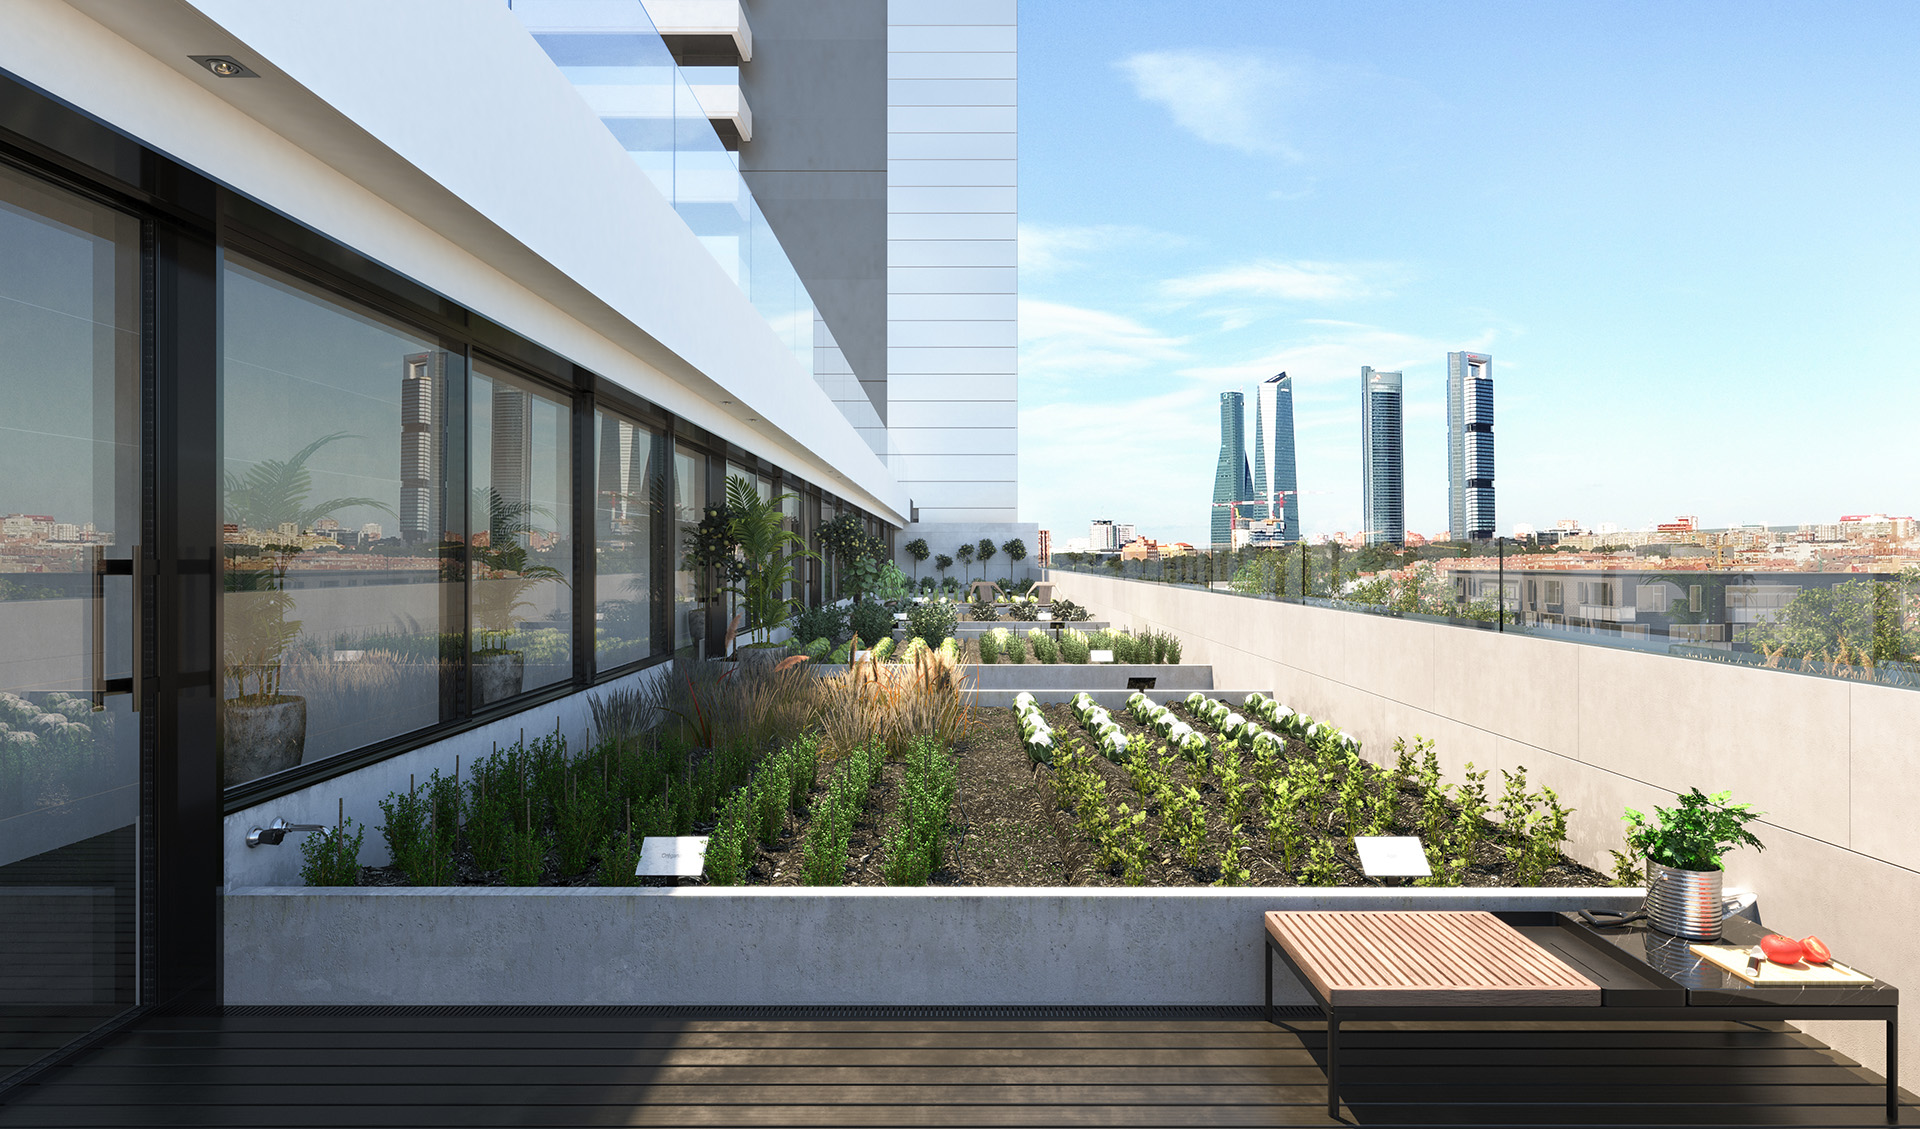 Recreation of Urban Garden on nineth floor